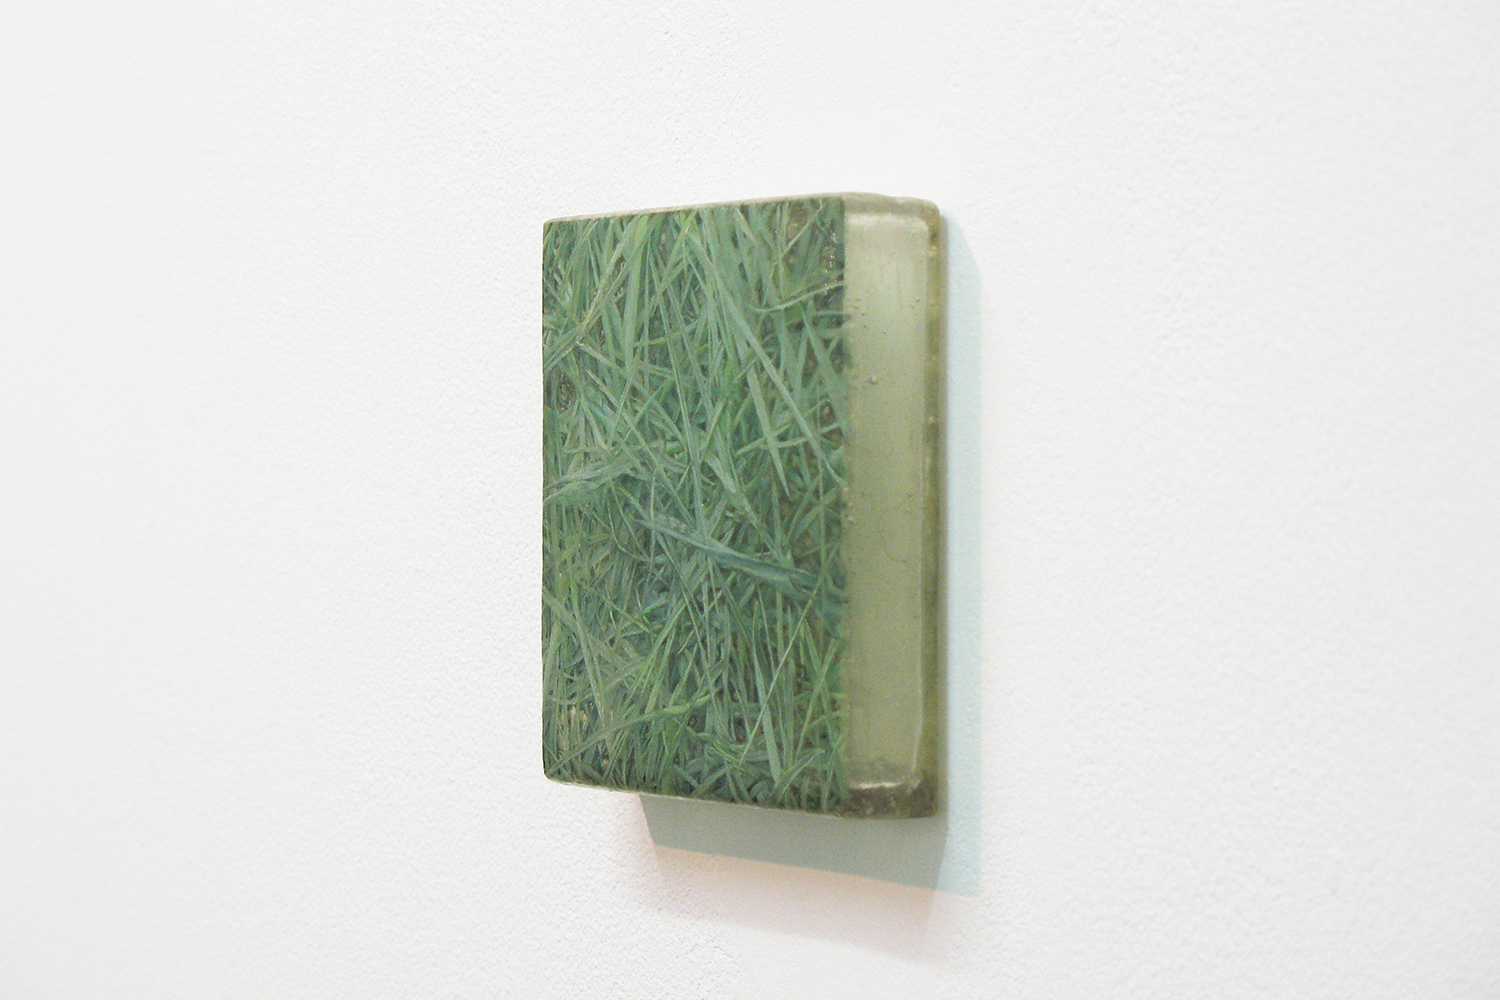 Photo painting 「草上の手触り」11・1|11 x 11cm|Oil on FRP panel|2011